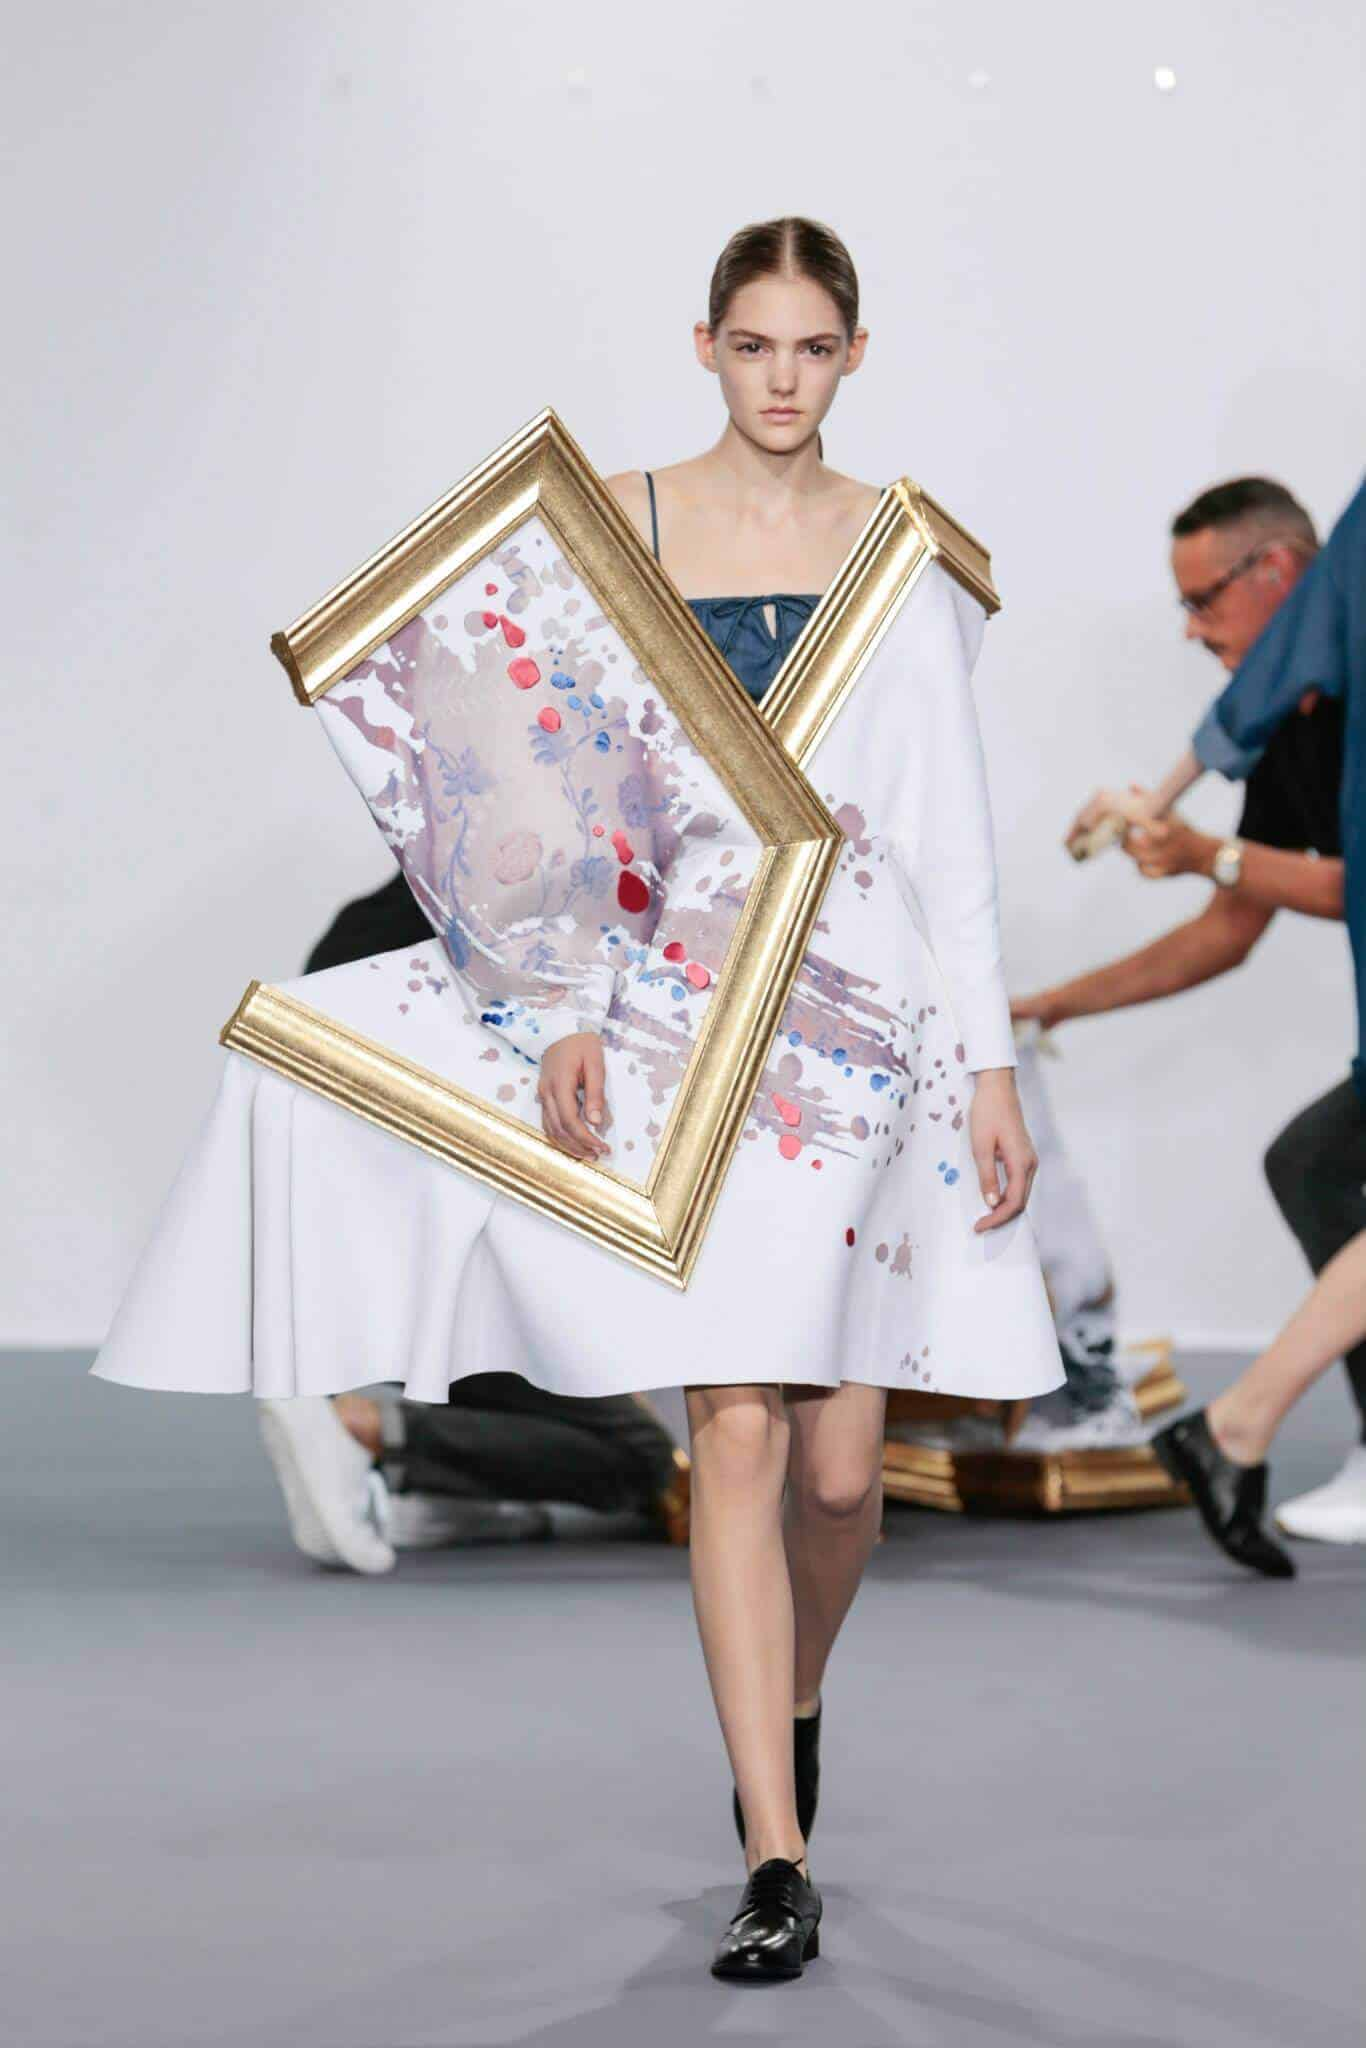 Who Is Artist Poppy S Clothes Designer